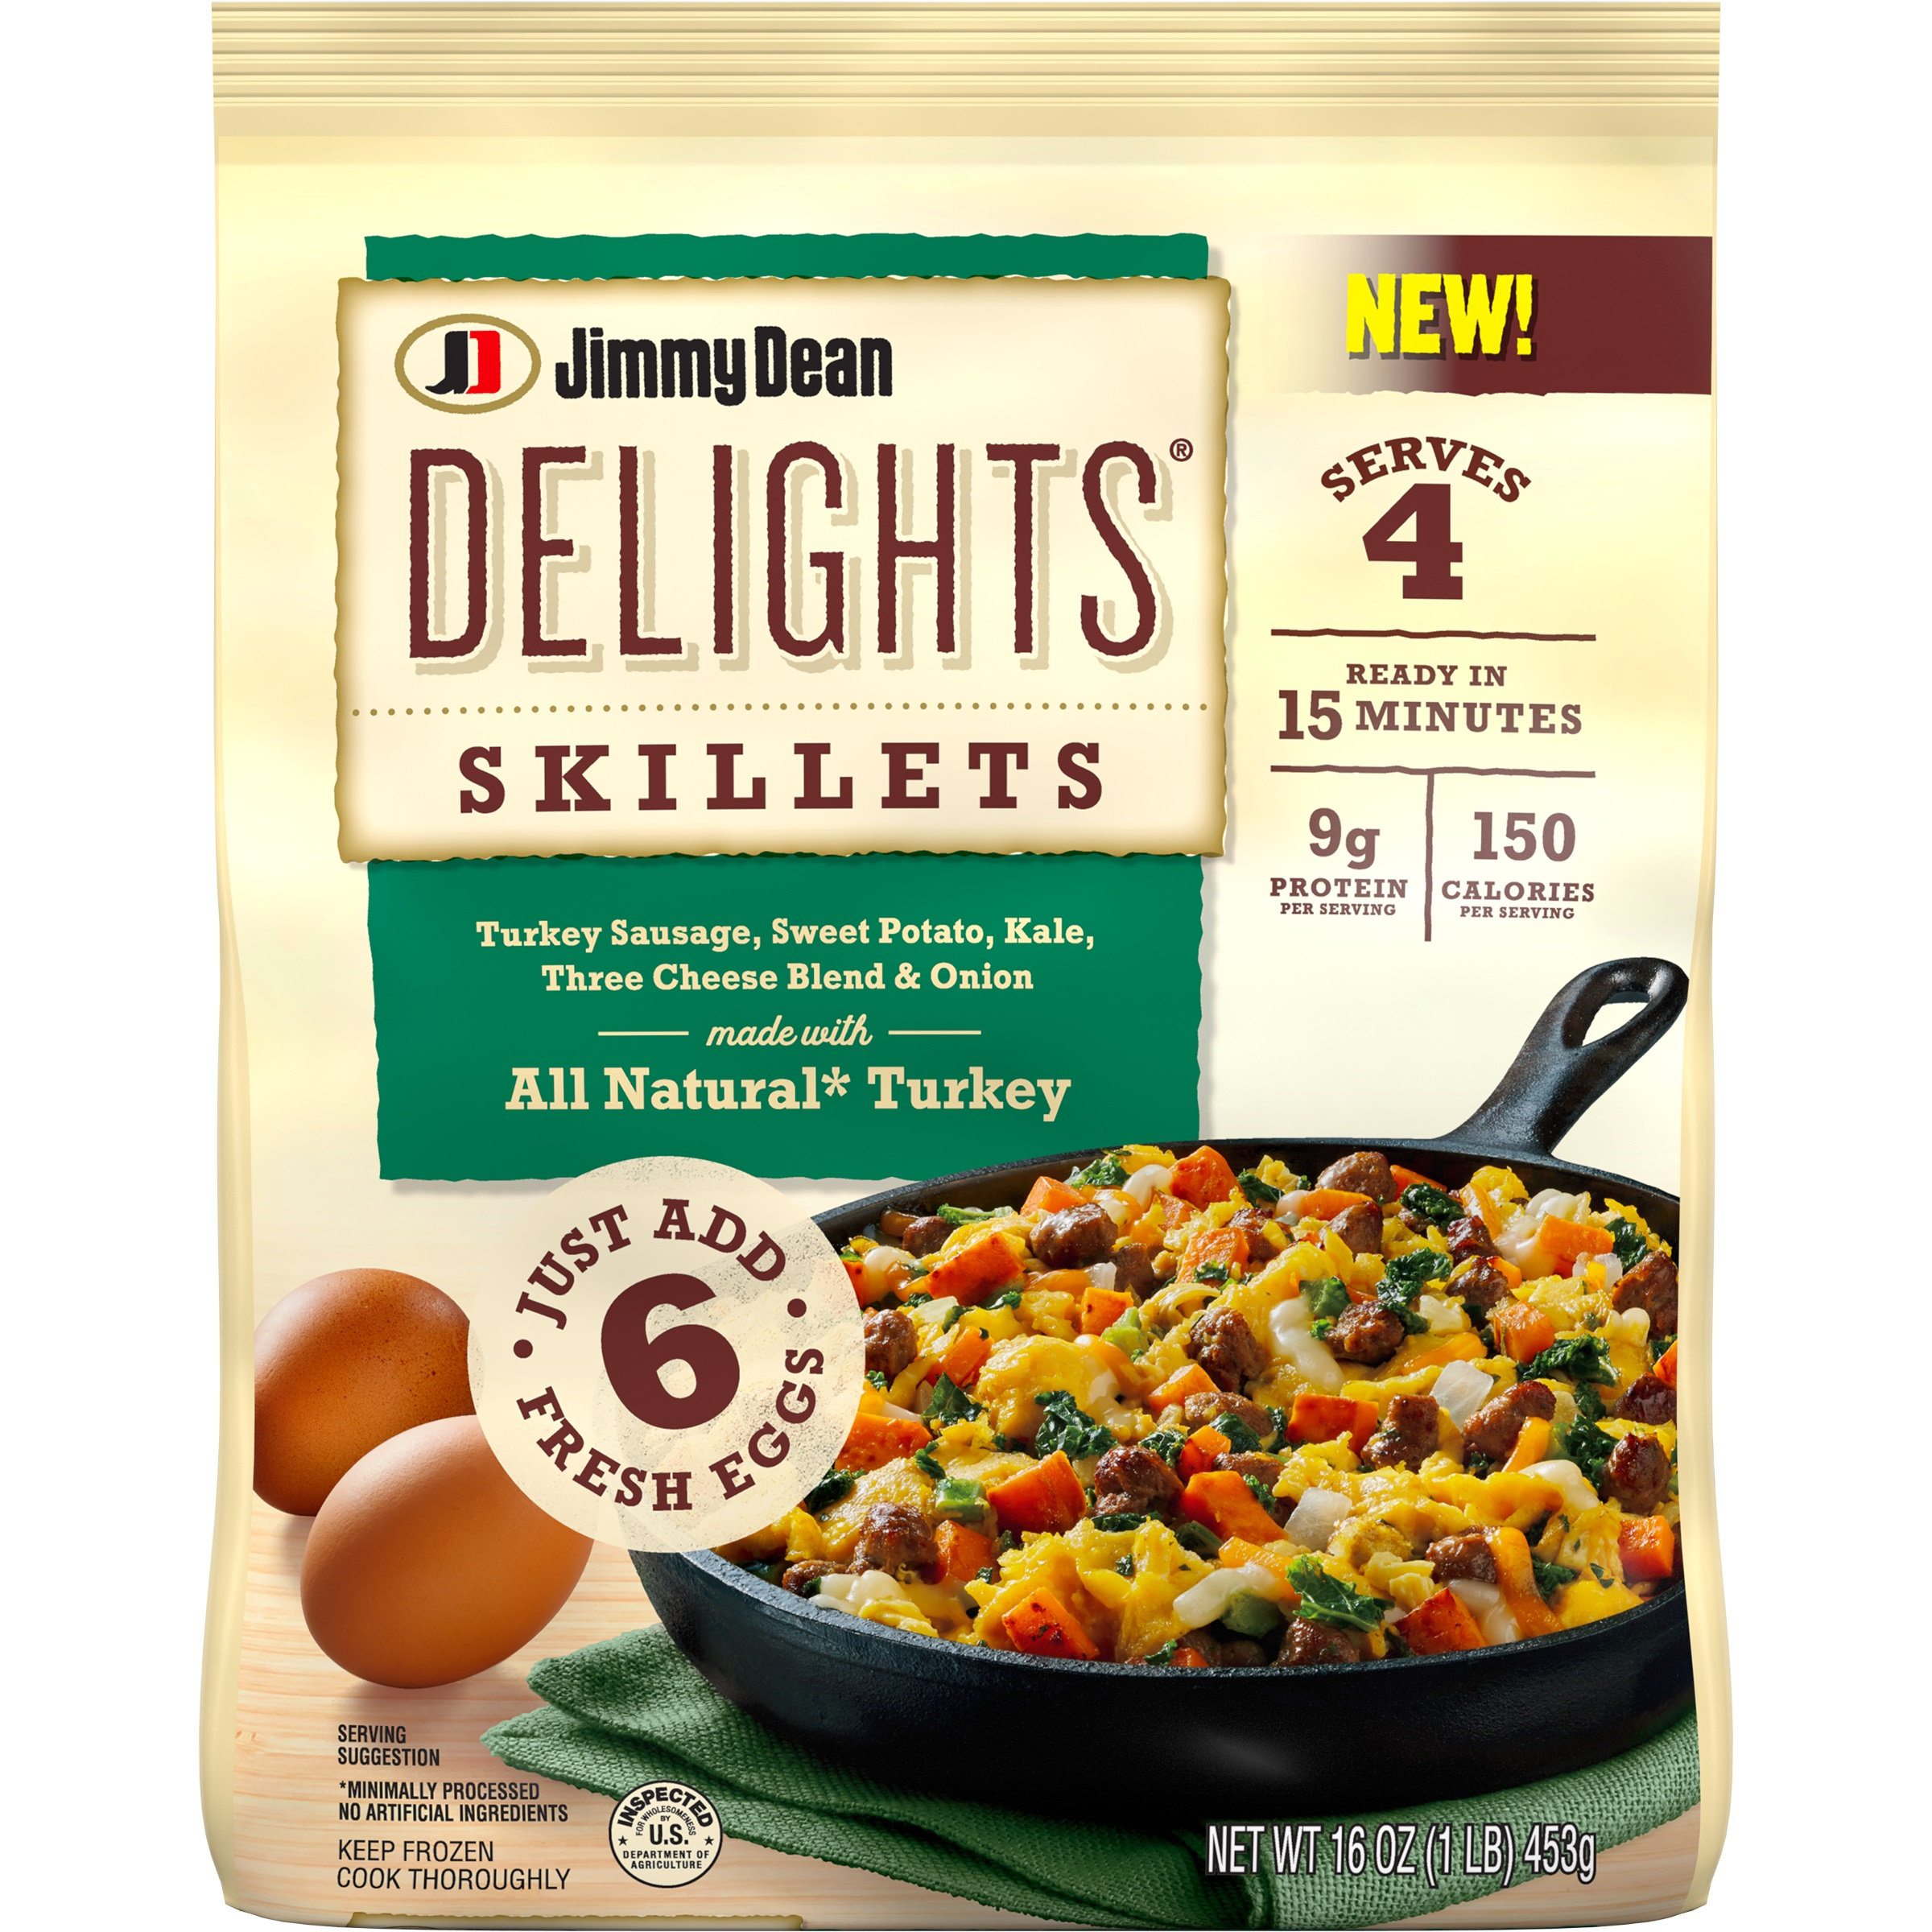 Jimmy Dean Delights® Skillets are a delicious, flavorful breakfast with seasoned vegetables and a three-cheese blend available in one flavor variety: Turkey Sausage, Sweet Potato and Kale